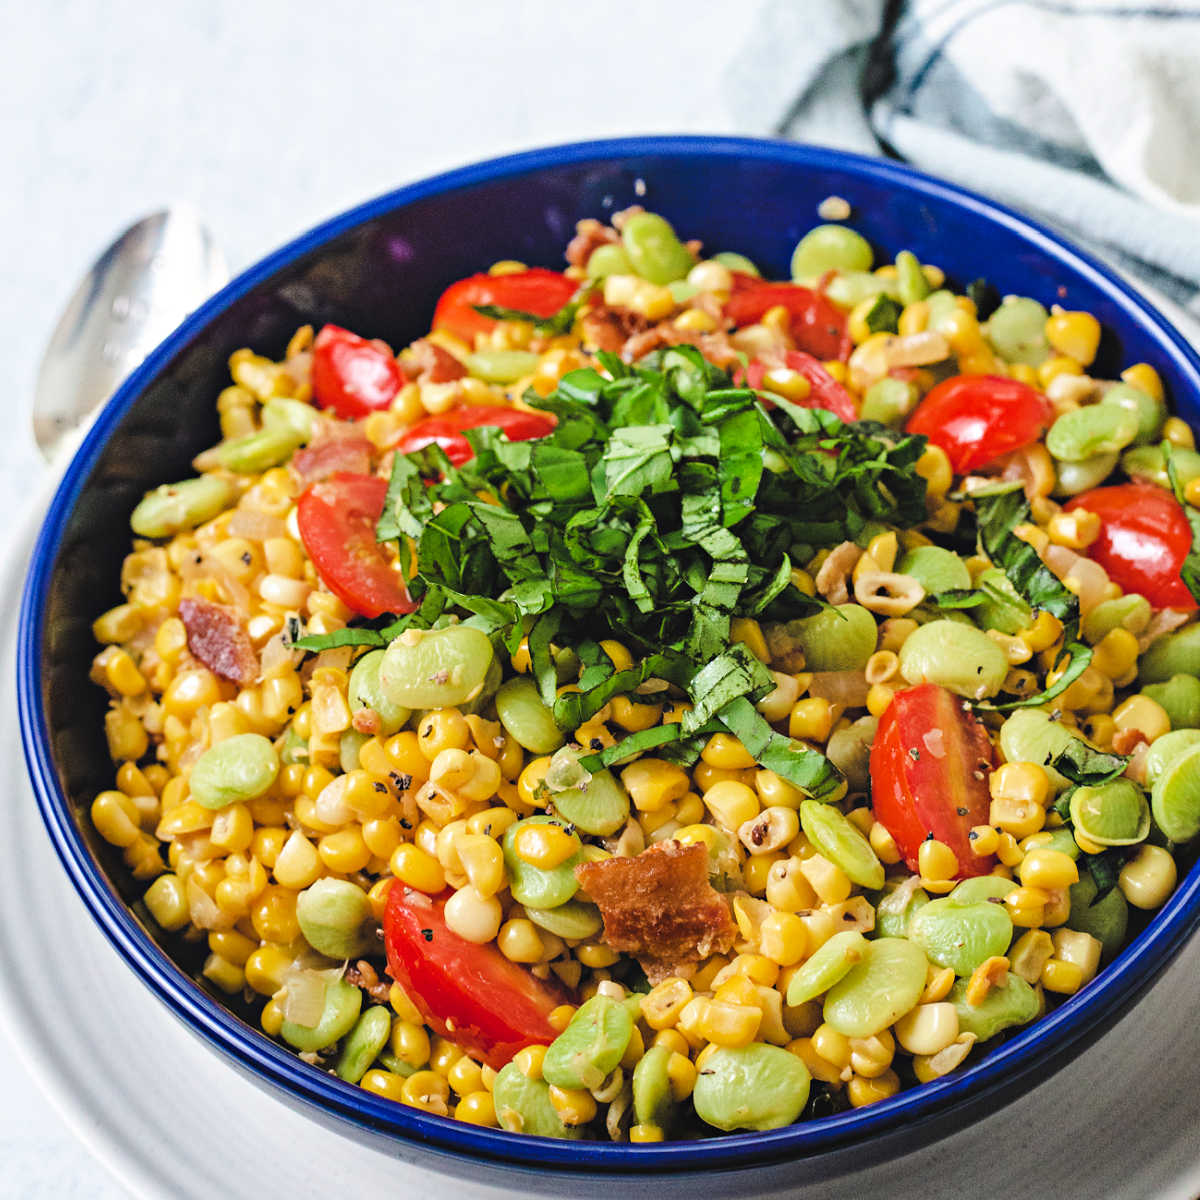 corn succotash garnished with a mound of basil chiffonade in a blue bowl on top of a white plate.